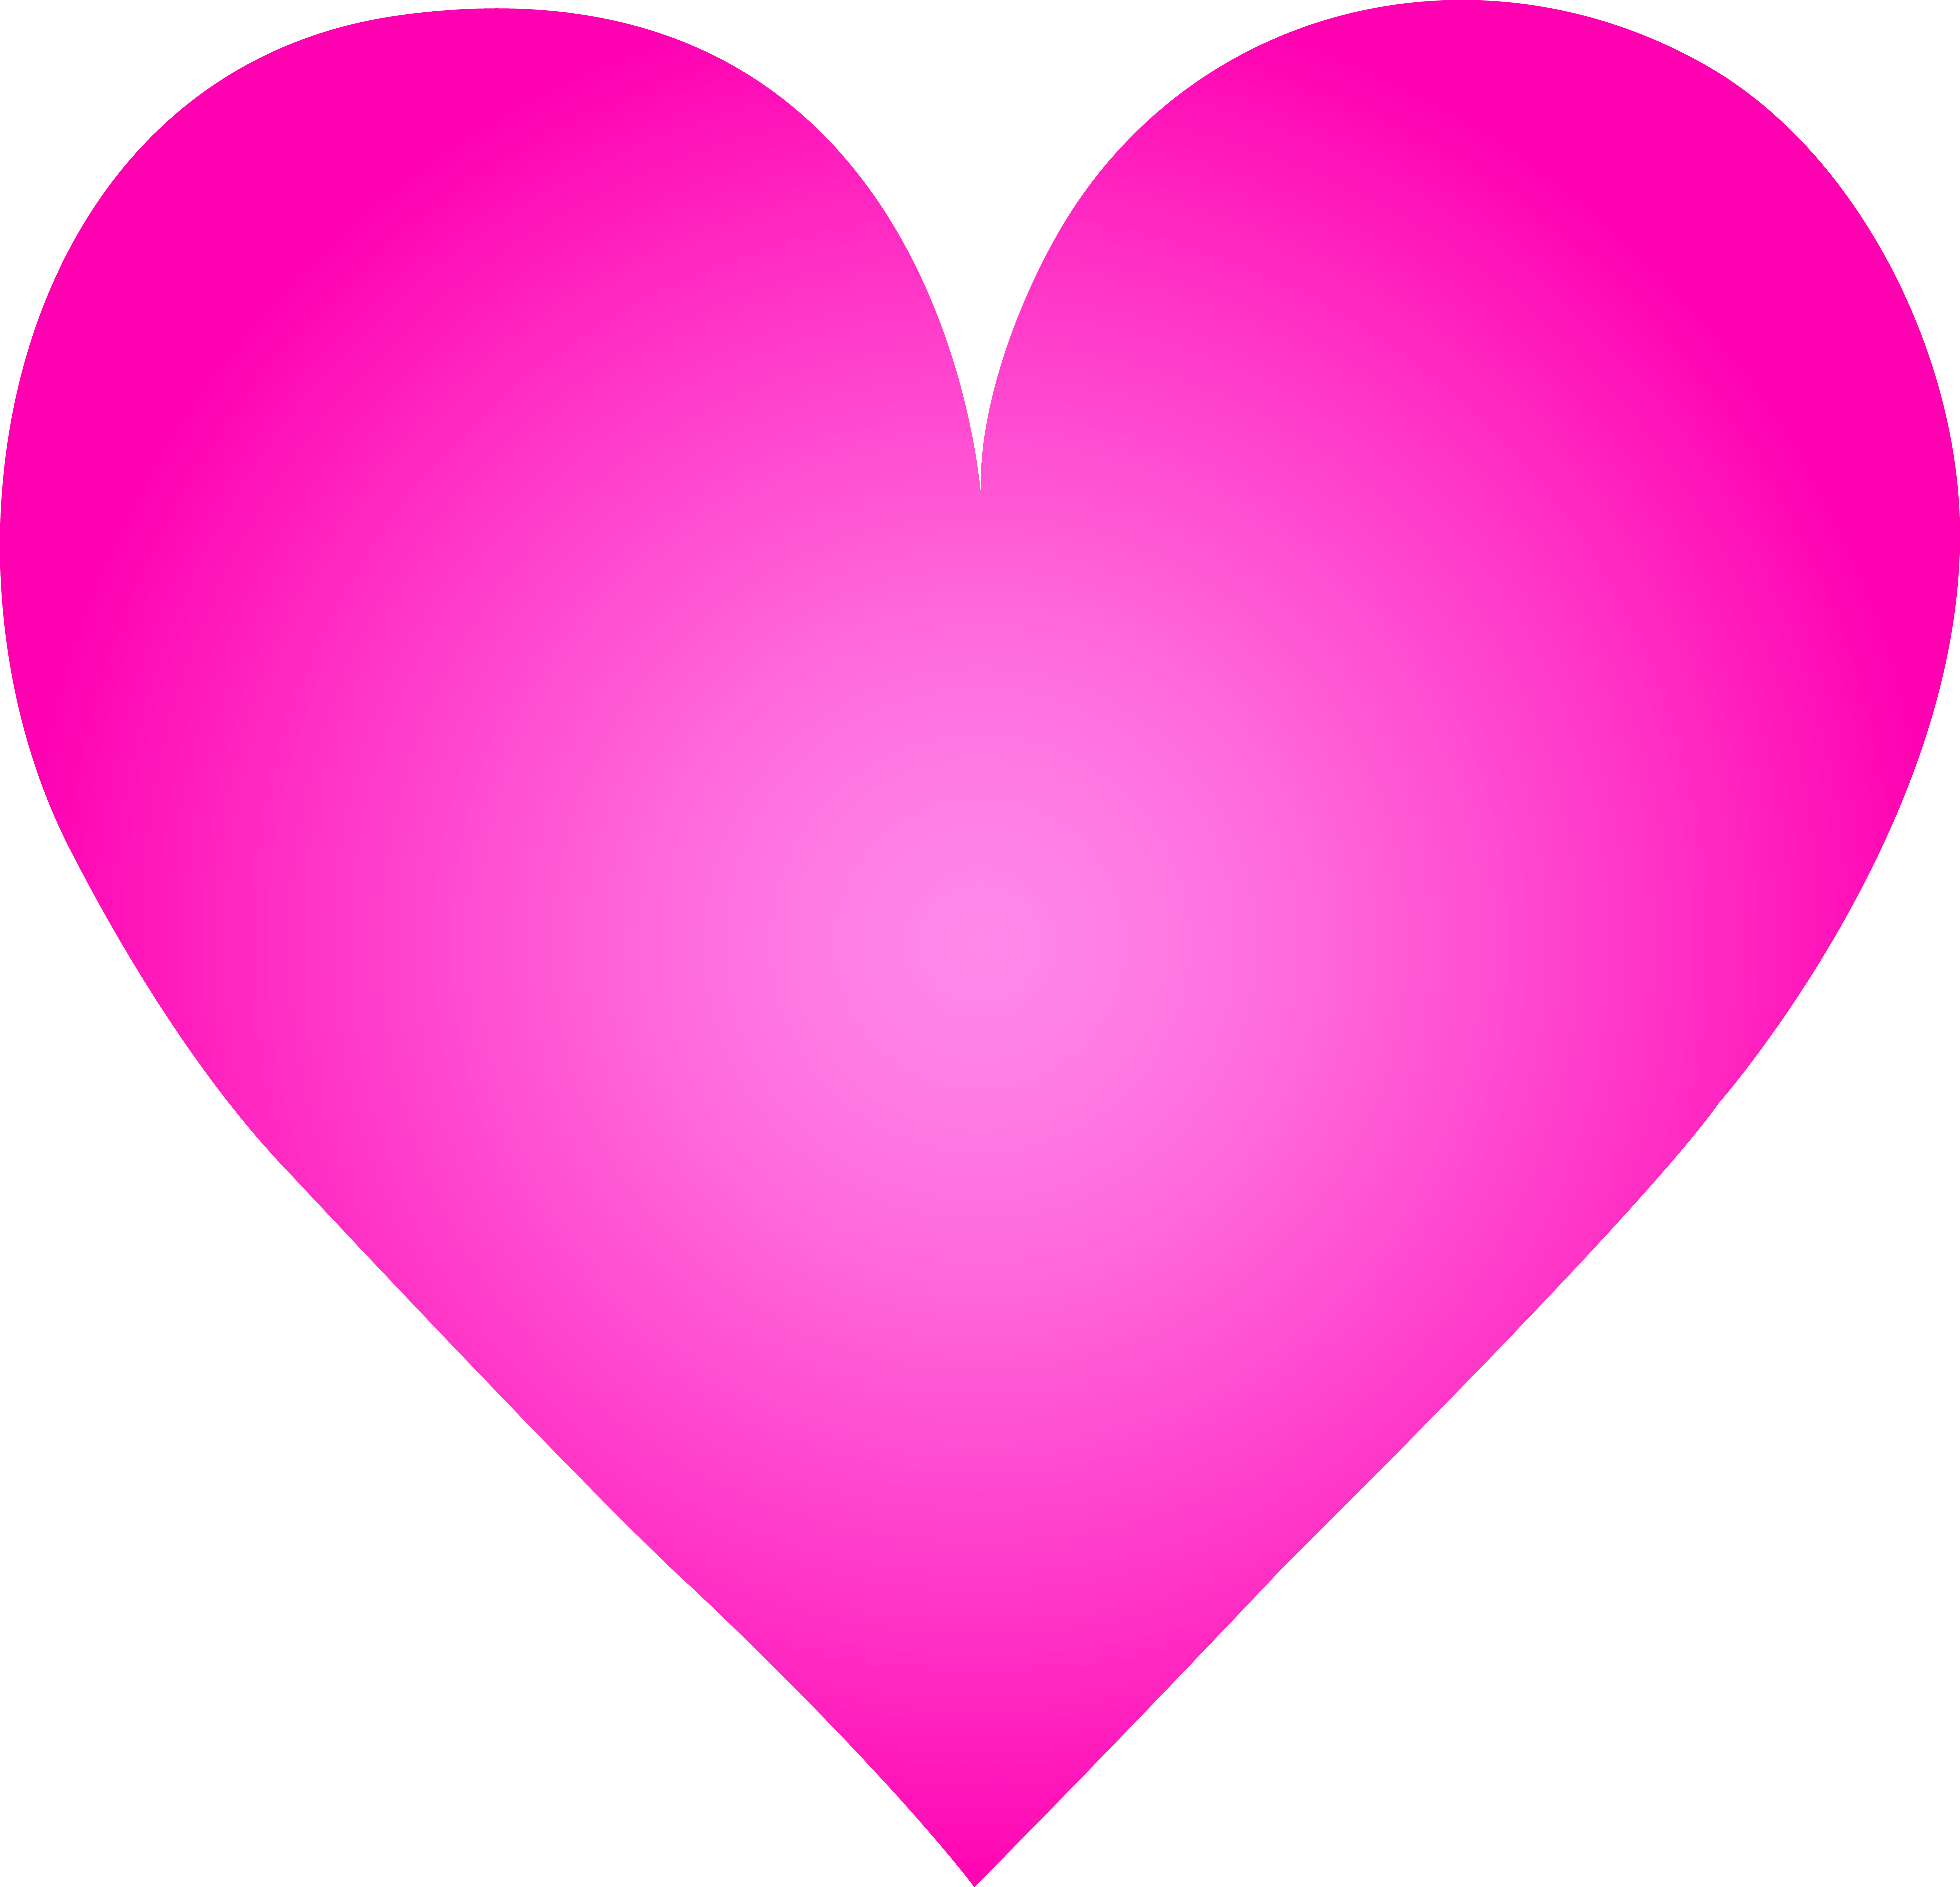 Fancy heart clipart banner black and white Free Pink Heart Image, Download Free Clip Art, Free Clip Art on ... banner black and white